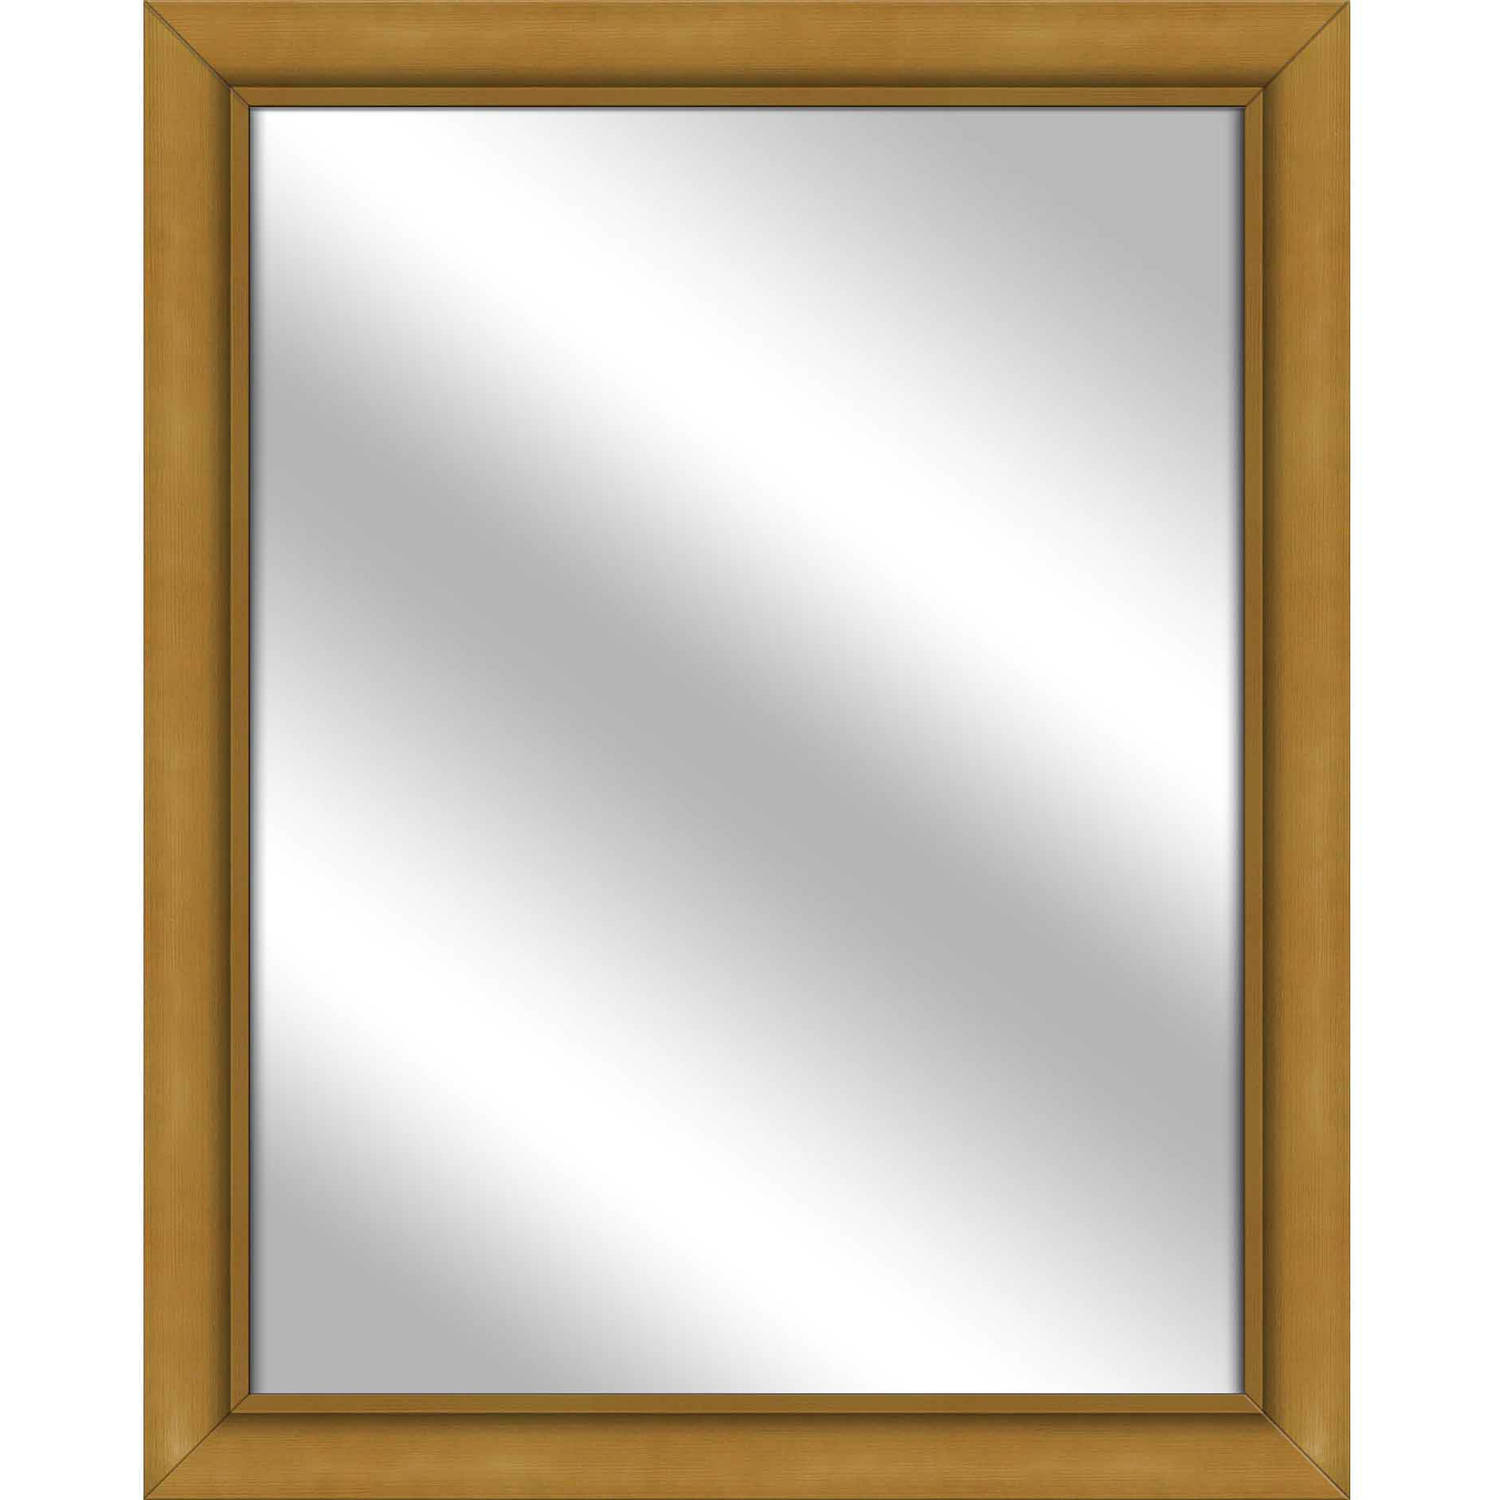 Vanity Mirror, Antique Gold, 25.5x31.5 by PTM Images